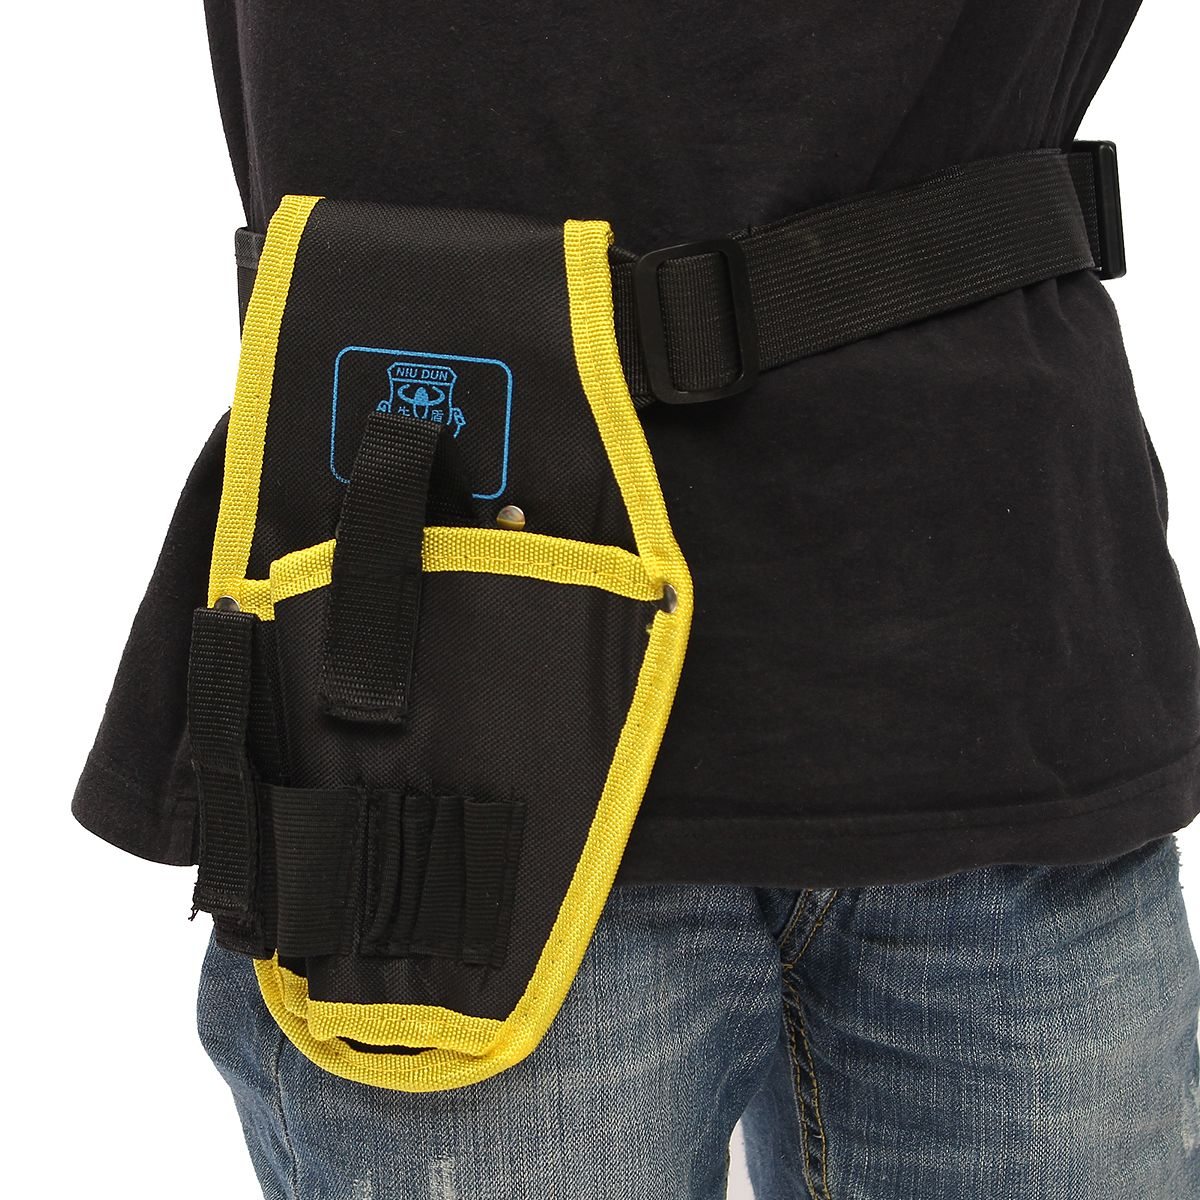 utility work tools bag organizers pocket pouch with belt